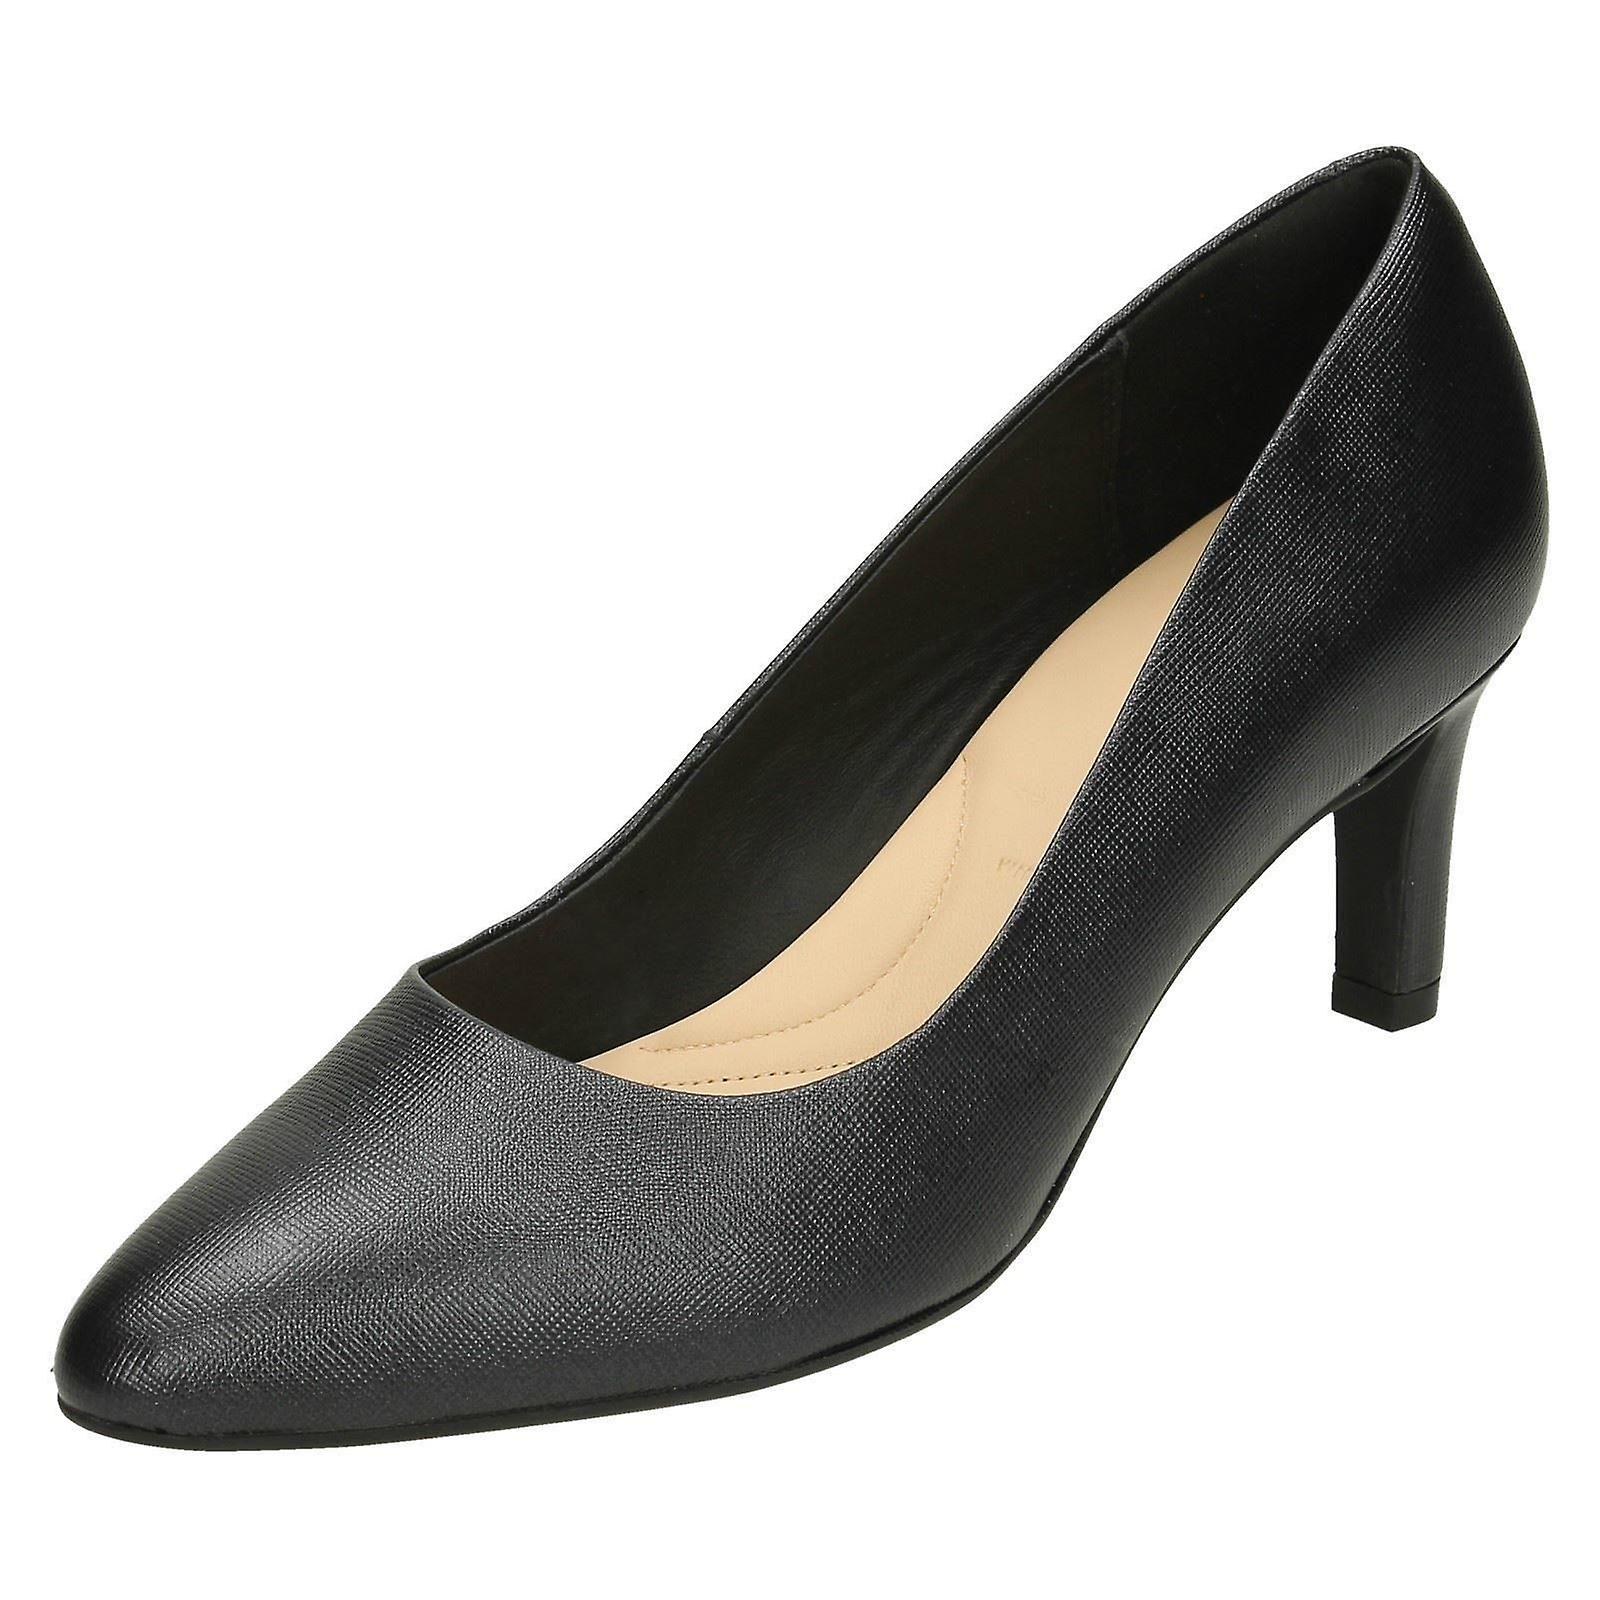 Size Calla 37 Leather EU Black Shoes 7M US Size Rose Clarks 5D UK Court 4 Textured Textured 5 Ladies Size IZw6x8